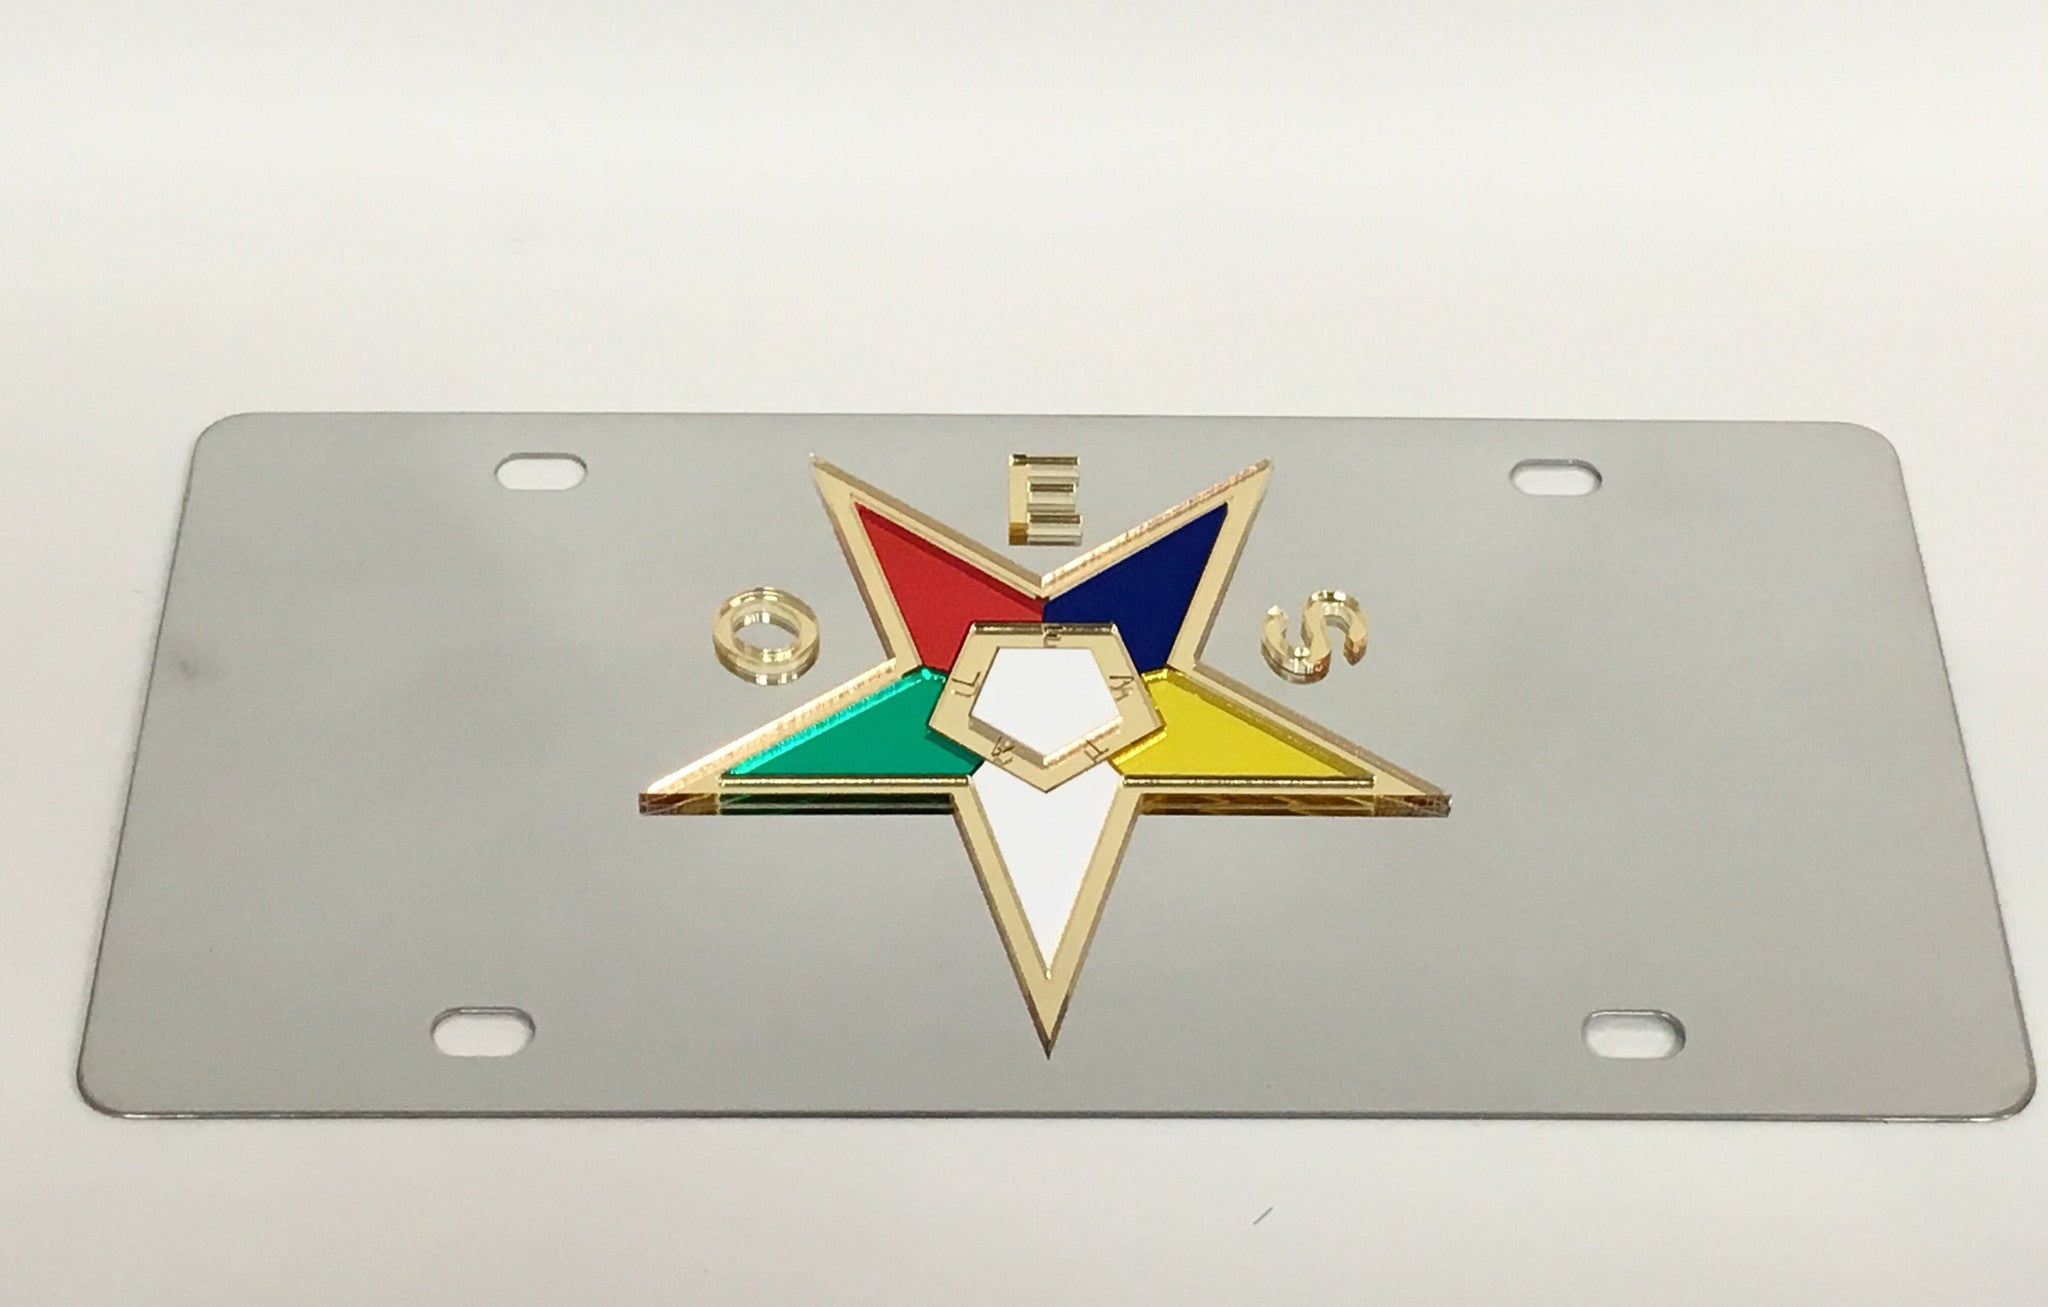 Eastern Star Stainless Steel License Plate